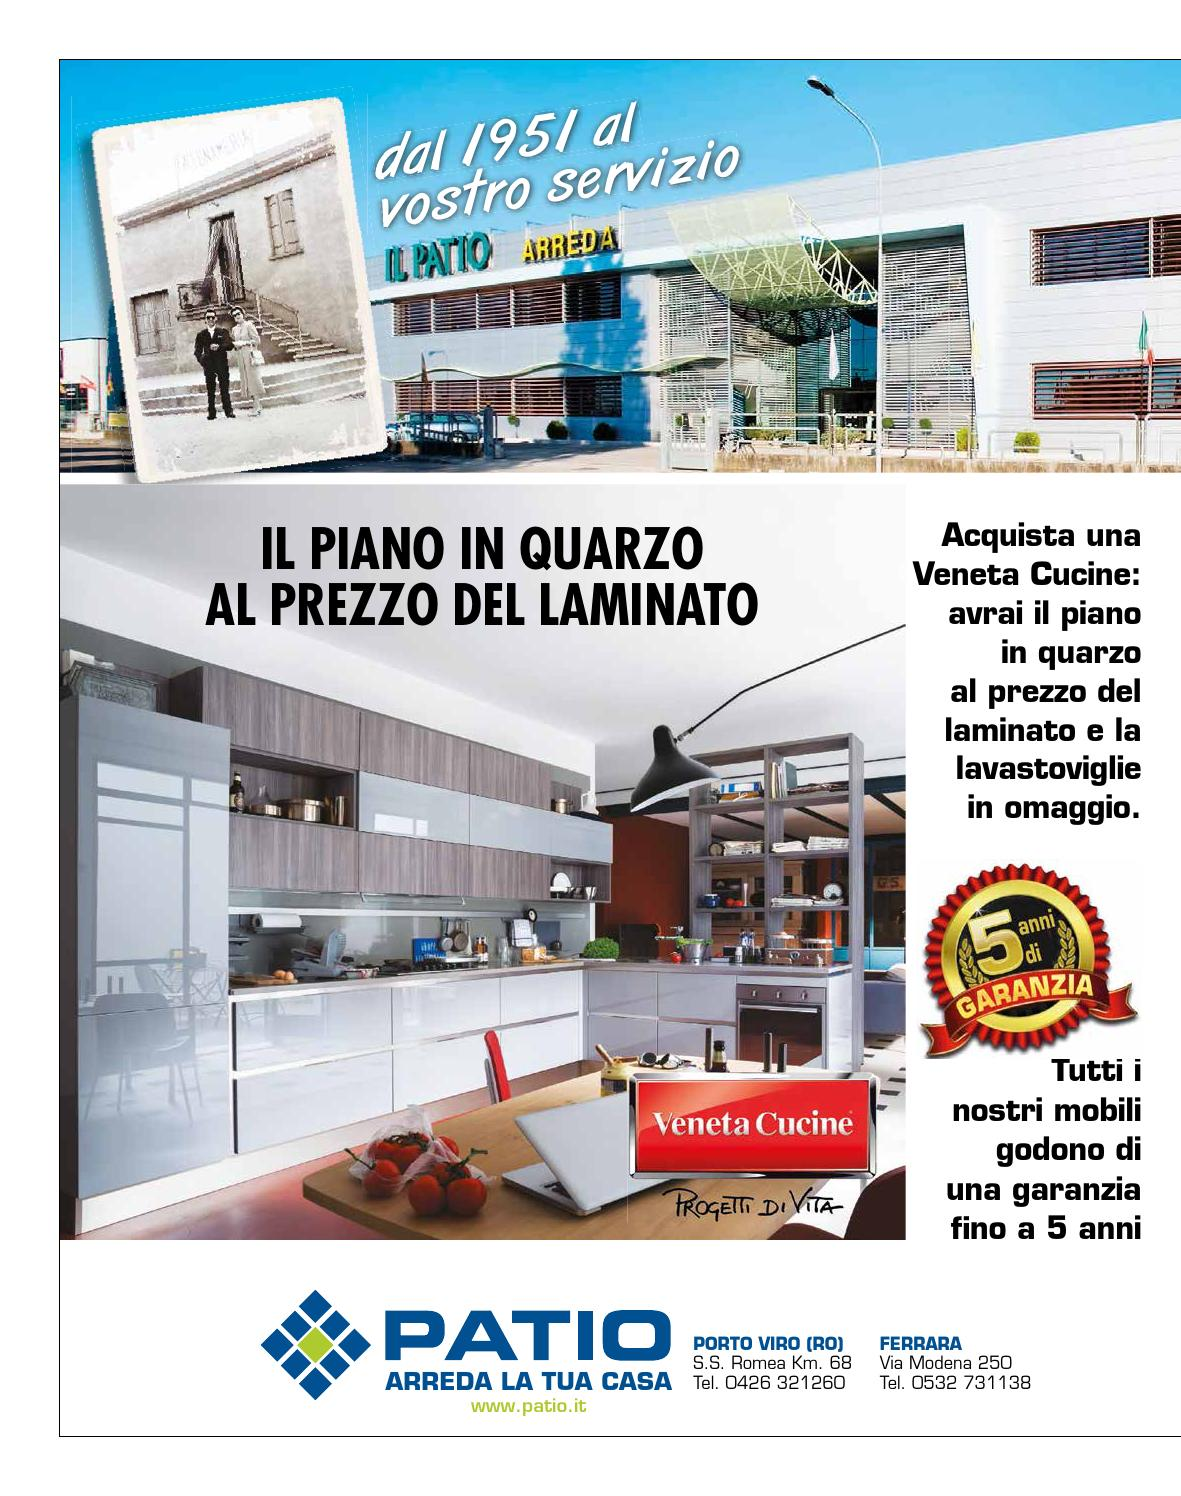 Conselvano marz2015 n33 by lapiazza give emotions - issuu